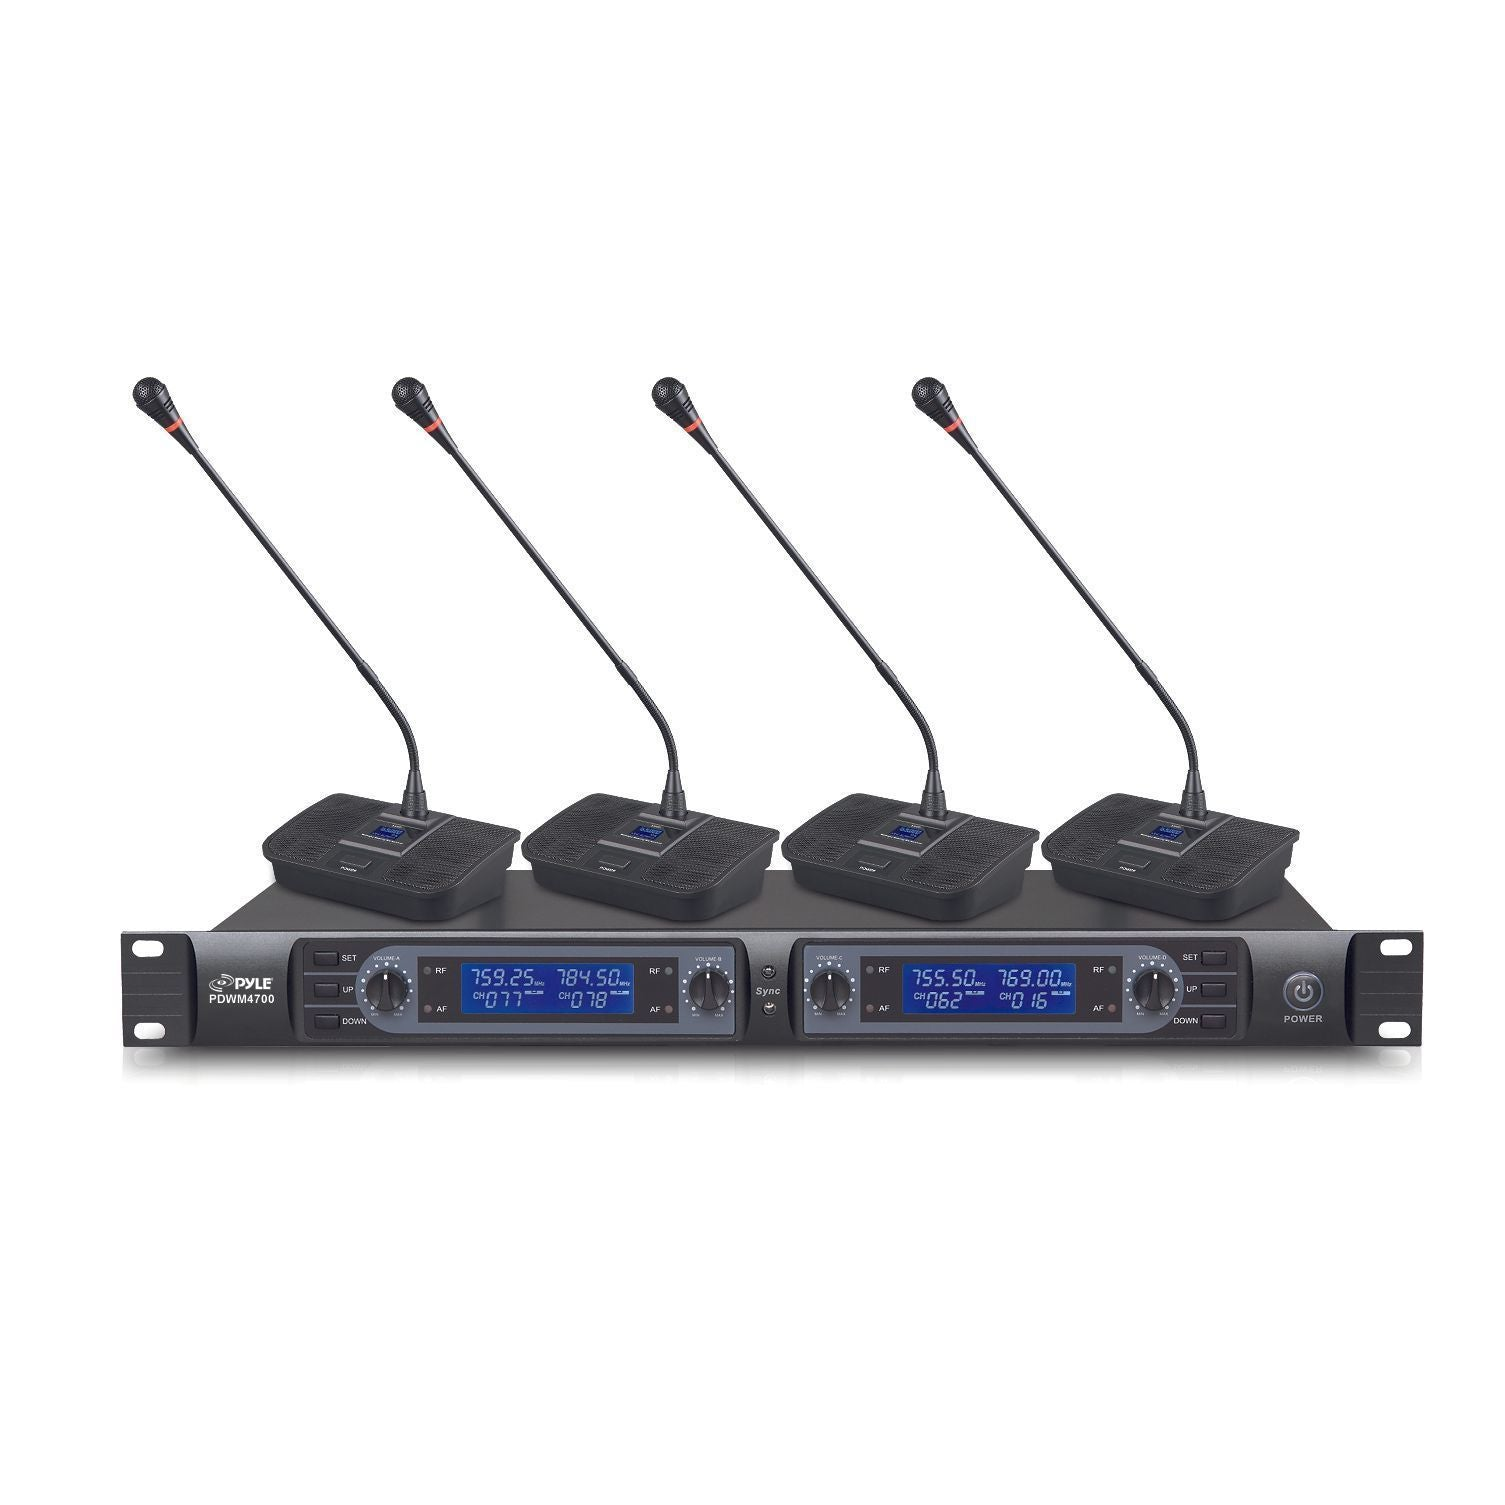 Pyle 4 Ch UHF Wireless Conference Microphone System Desktop/Table & Rack Mountable Base 200 Selectable Frequency Channels Independent Volume Controls LCD Display AF & RF Signal Indicators (PDWM4700)